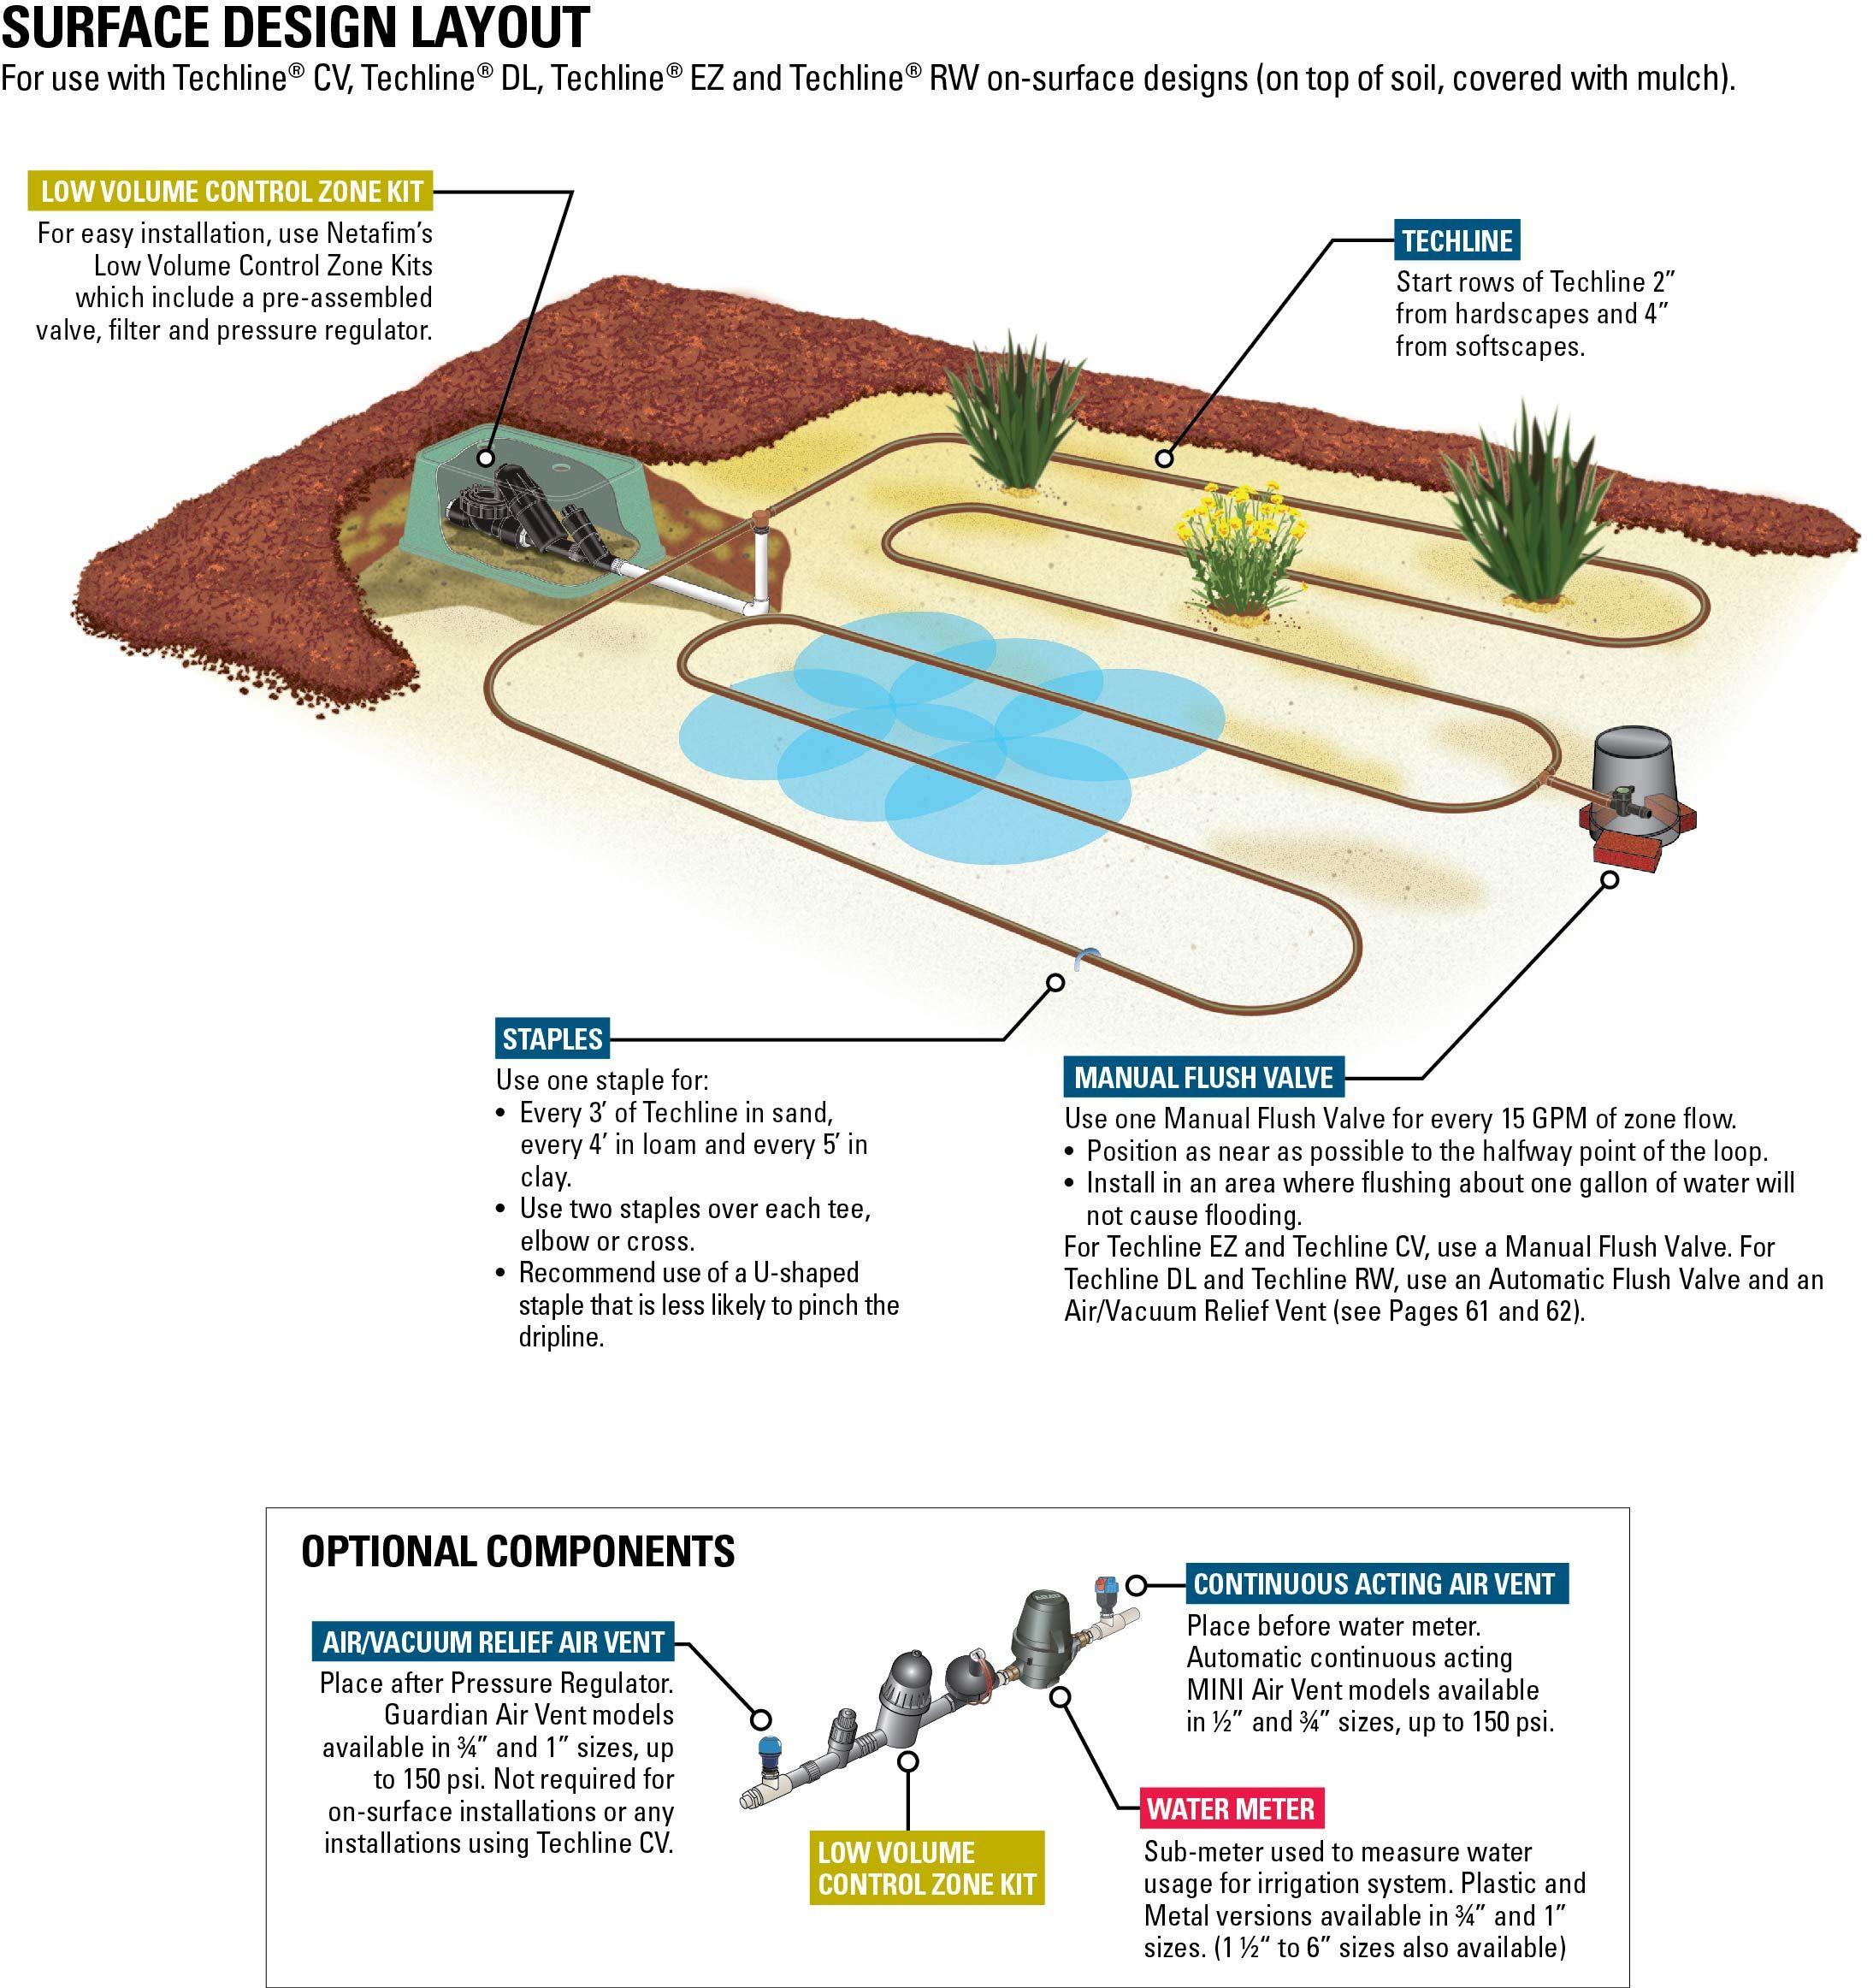 typical design layout for a surface drip irrigation system